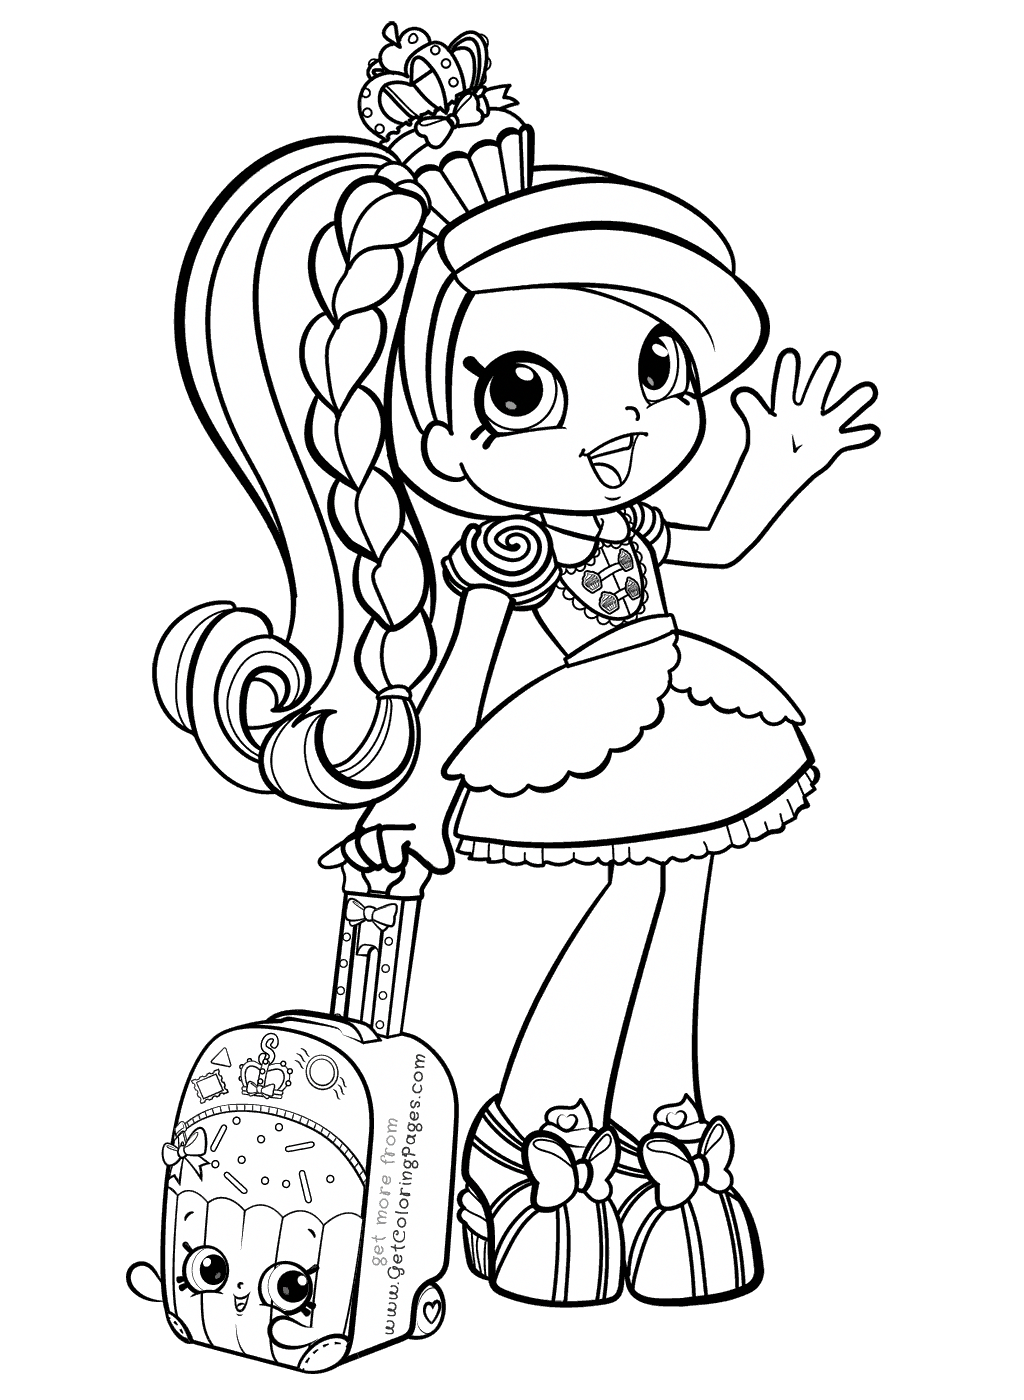 Shoppies Coloring Pages Shopkin Coloring Pages Cute Coloring